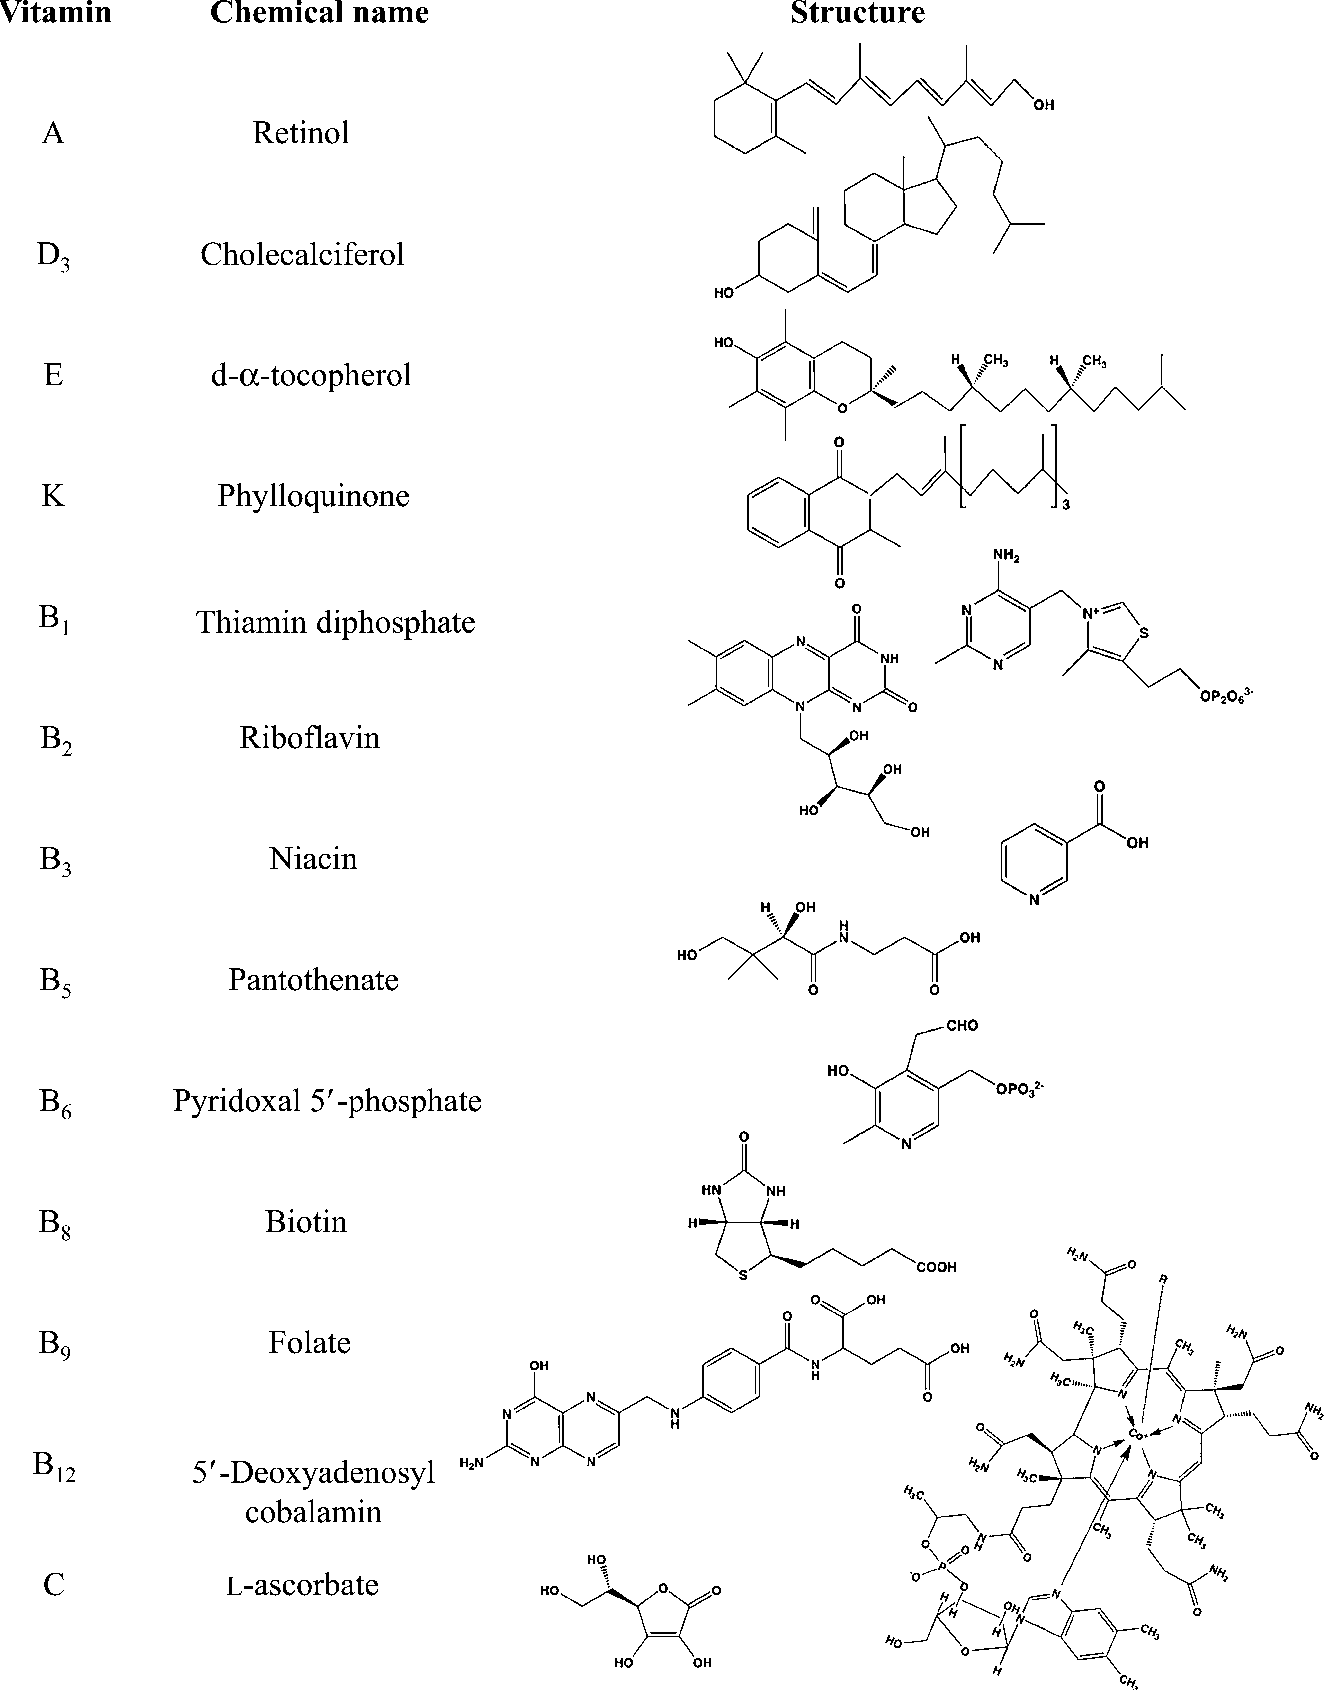 Figure 1. The 13 Vitamin Compounds Required in the Human Diet.